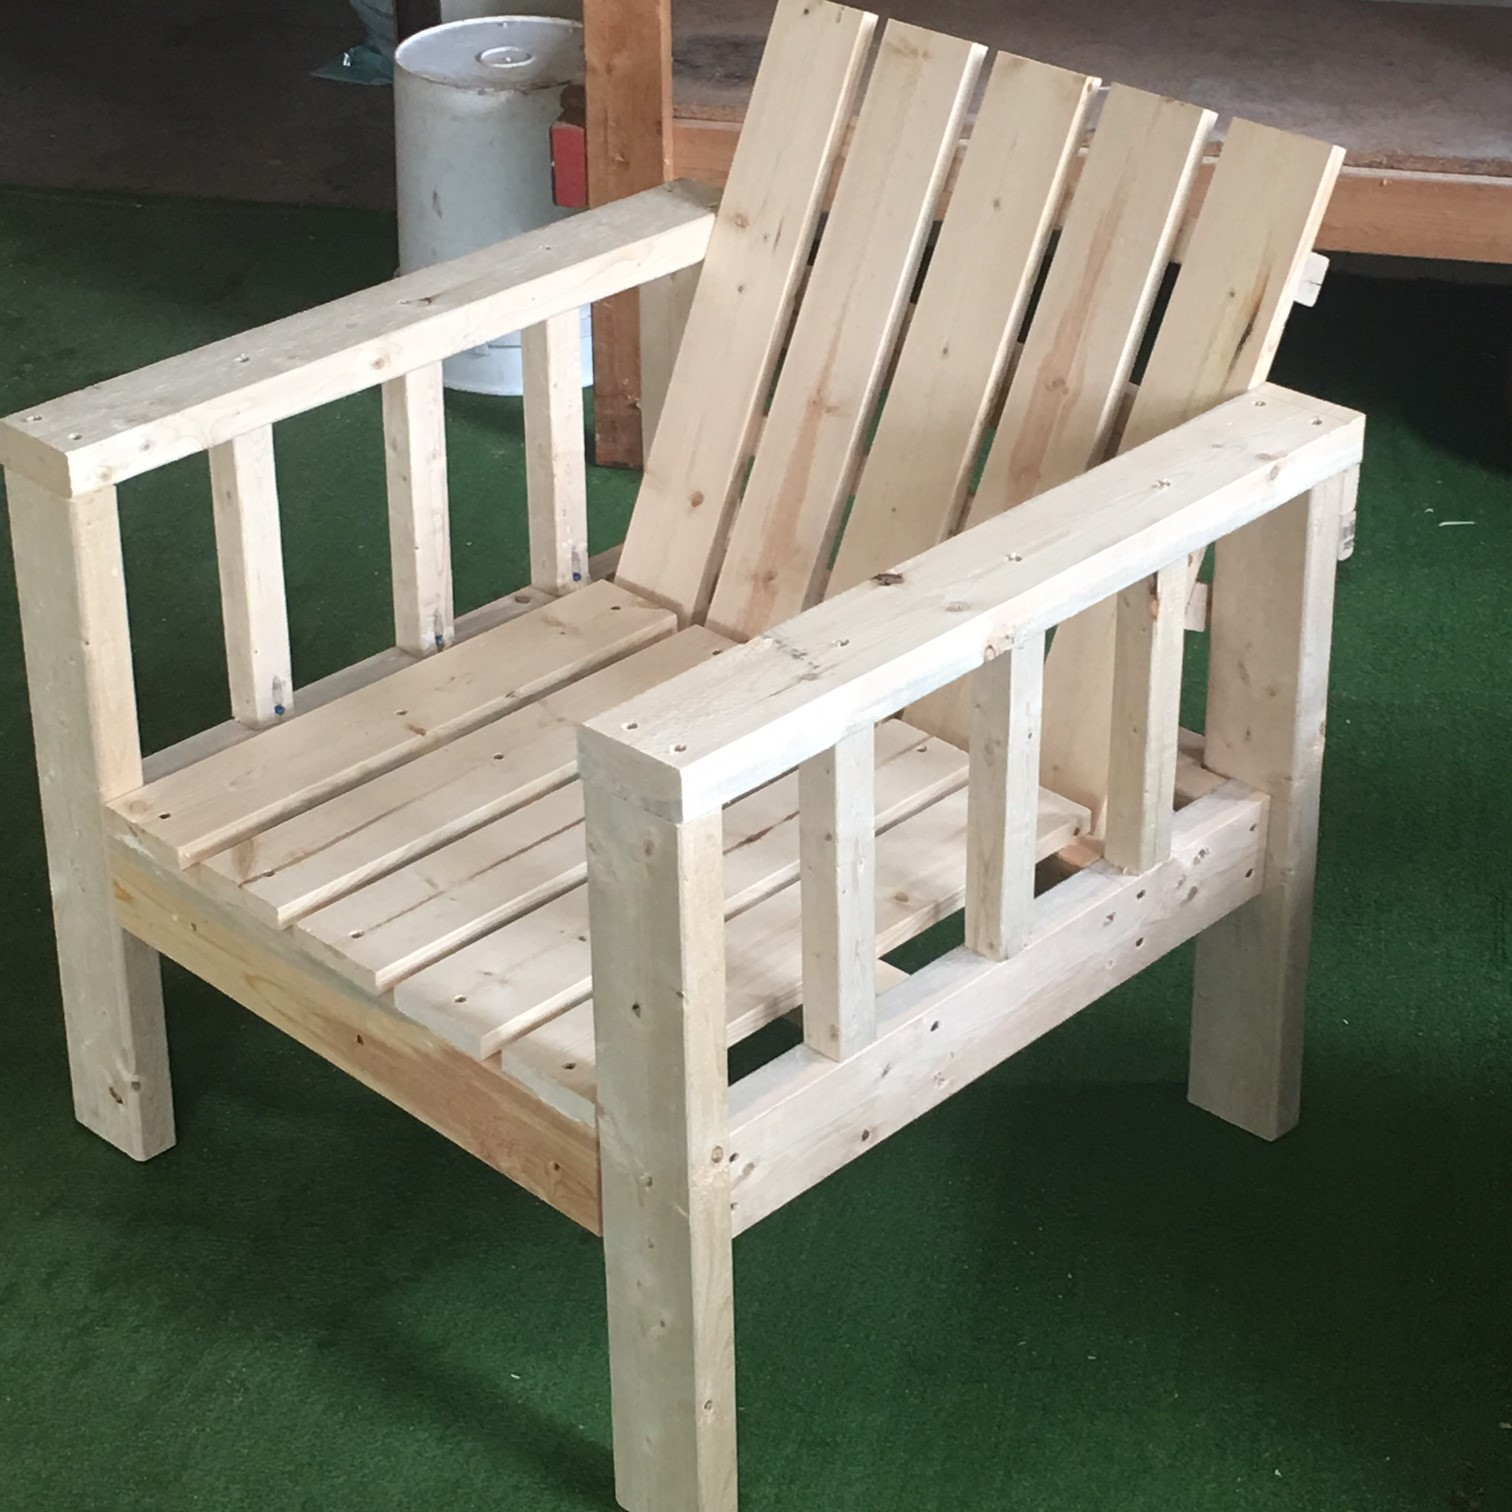 ana white my simple outdoor lounge chair with 2x4 diy projects